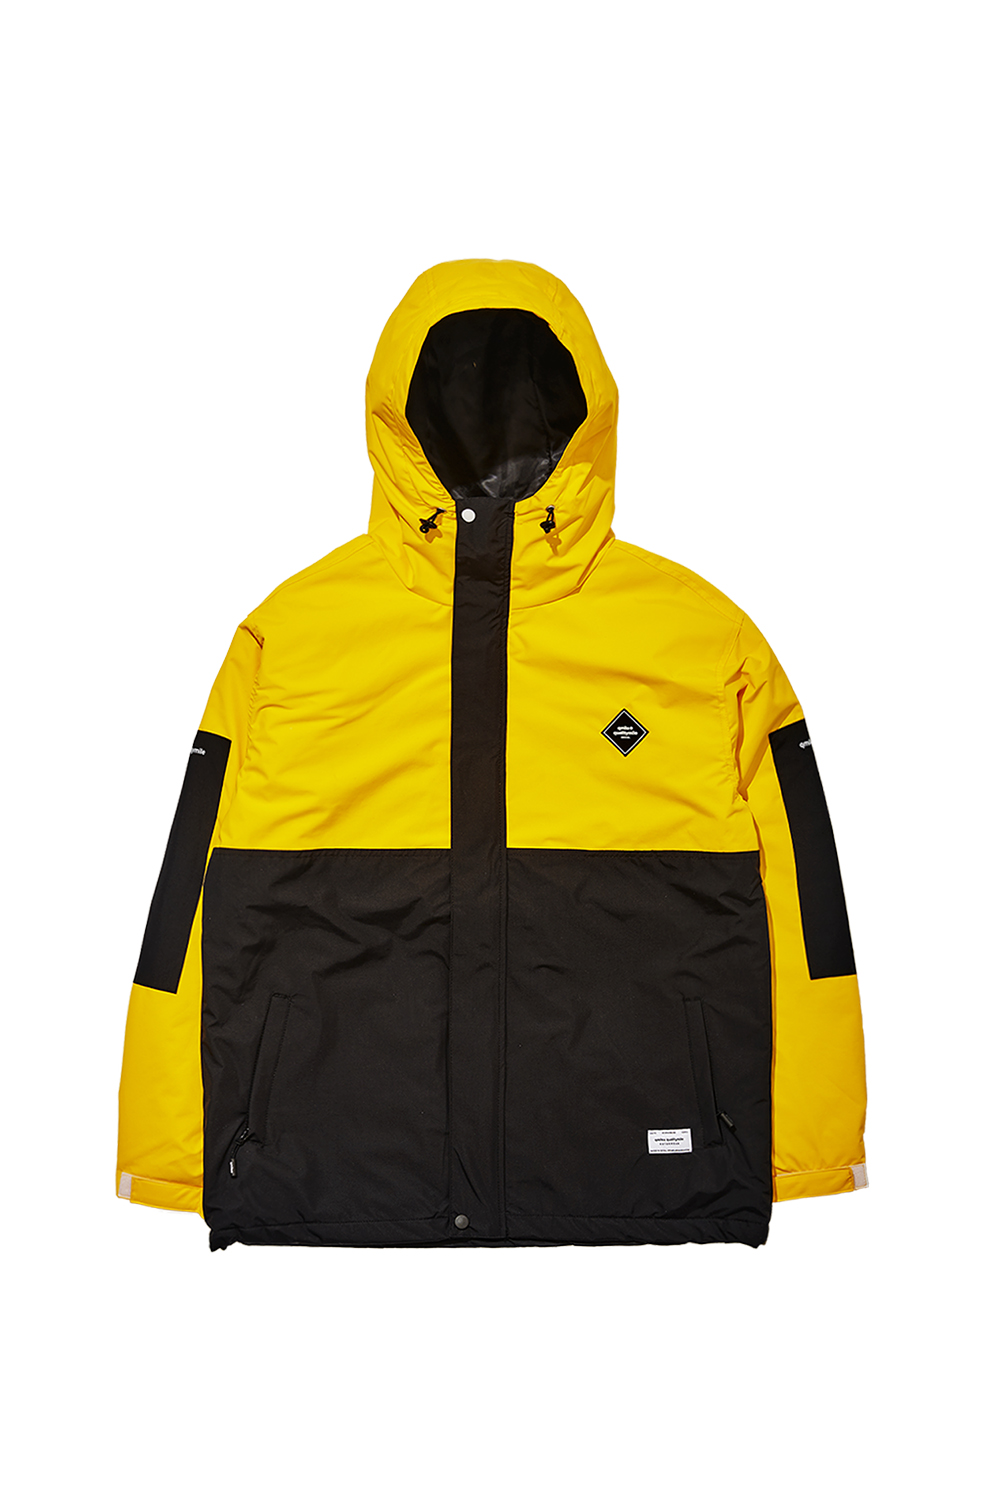 BELOW ZERO JACKET | YELLOW